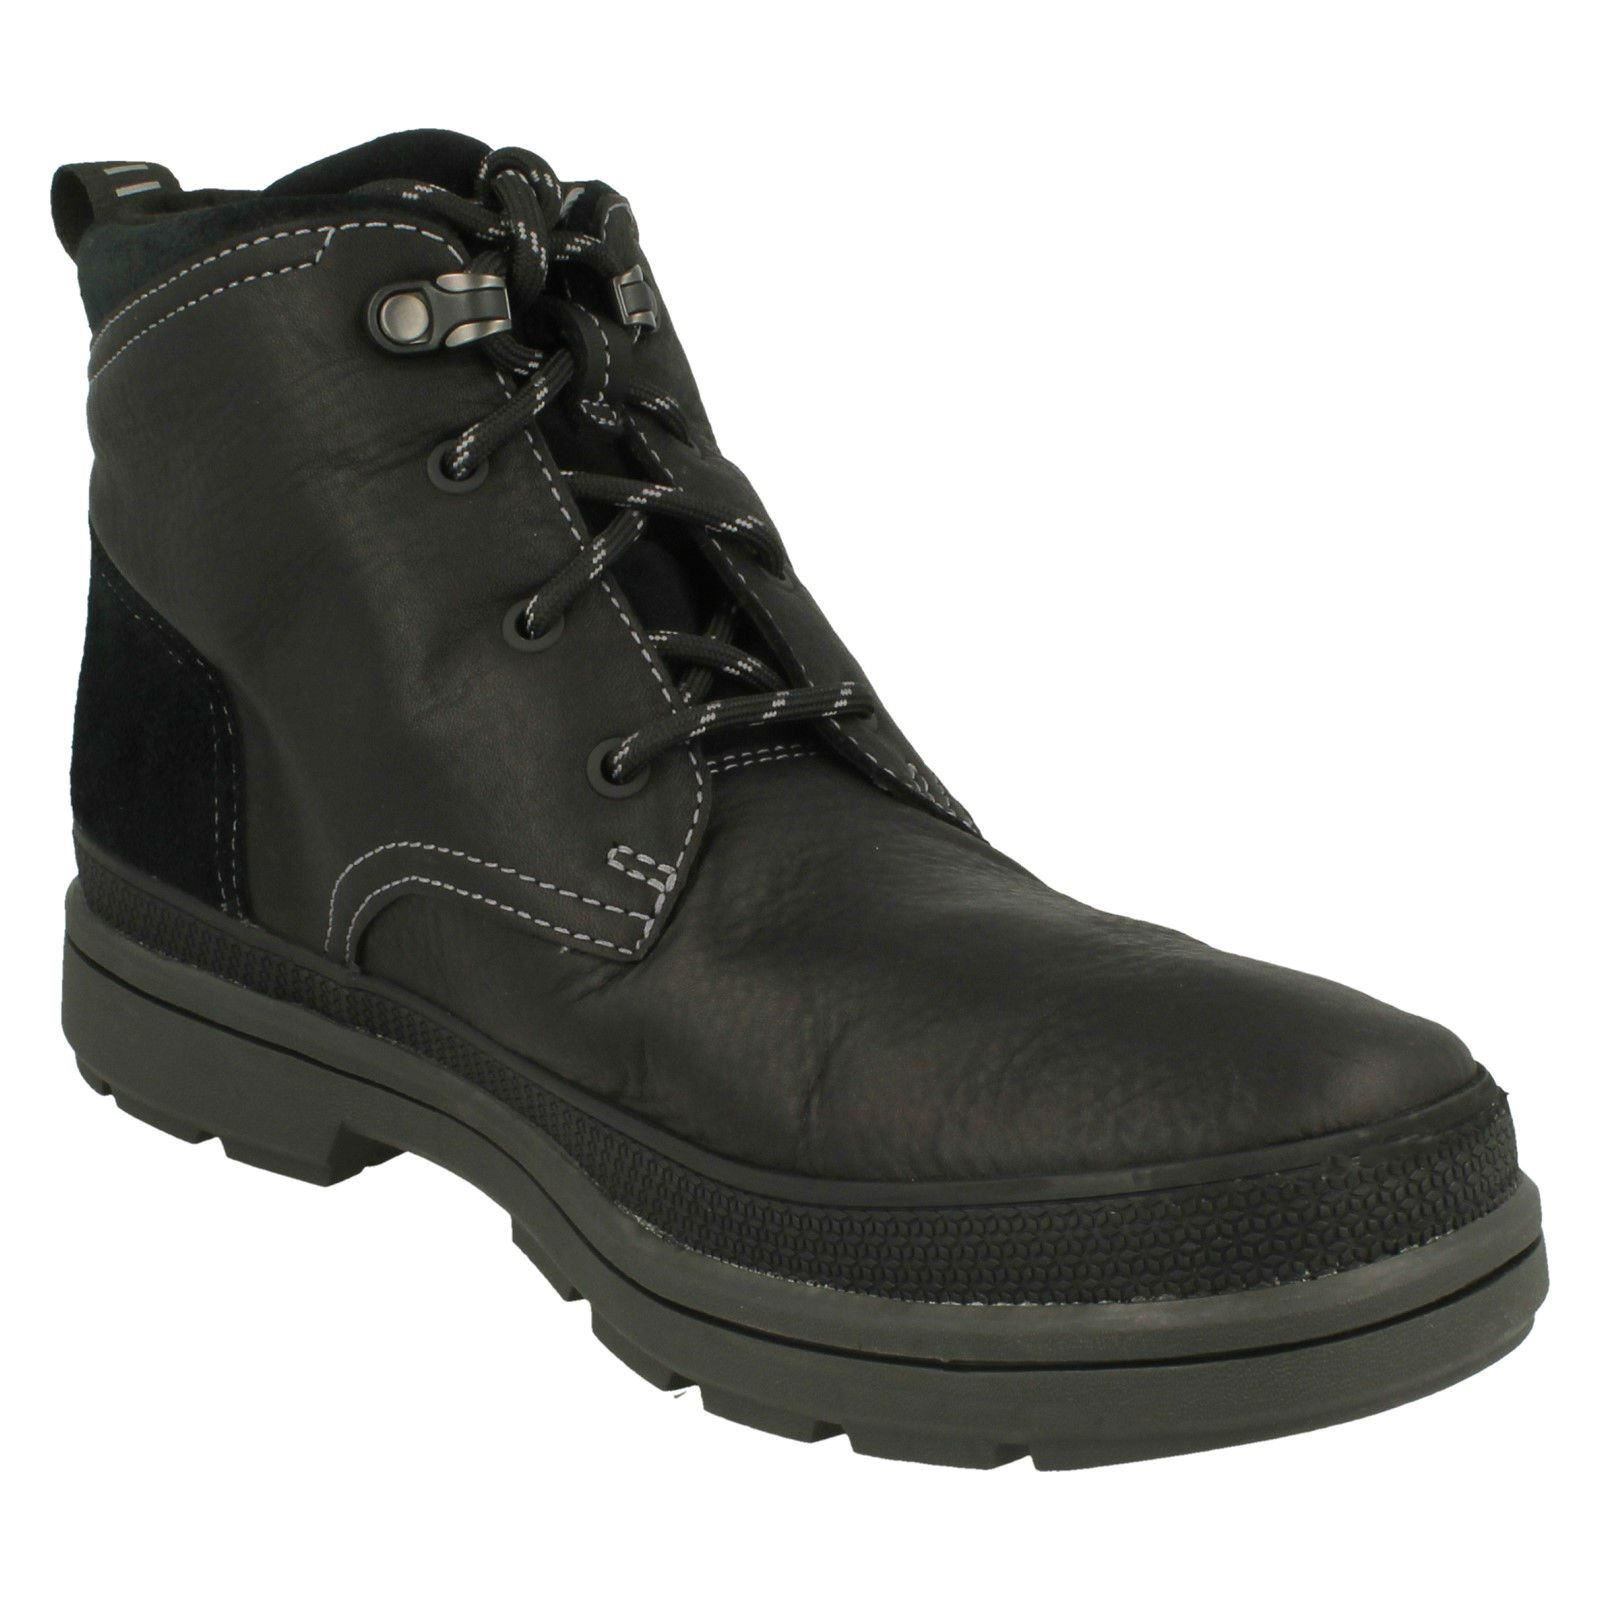 291dc56349b Details about Mens Clarks Gore-Tex Casual Boots 'Rushway Mid'